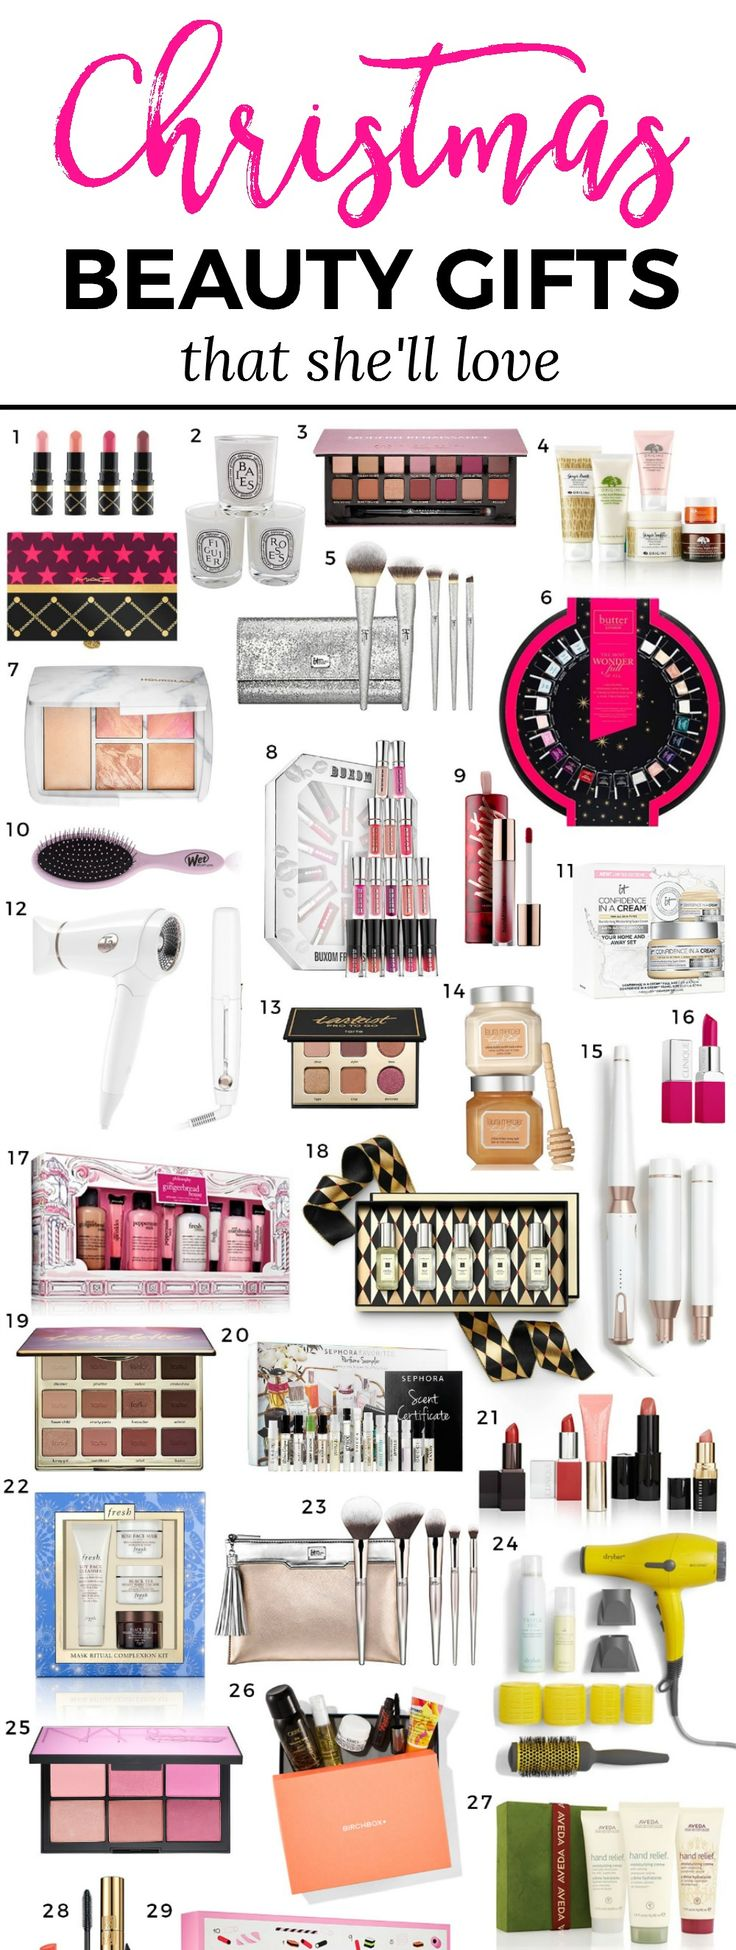 Article - Ashley Brooke's Christmas Beauty Gifts That She'll Love